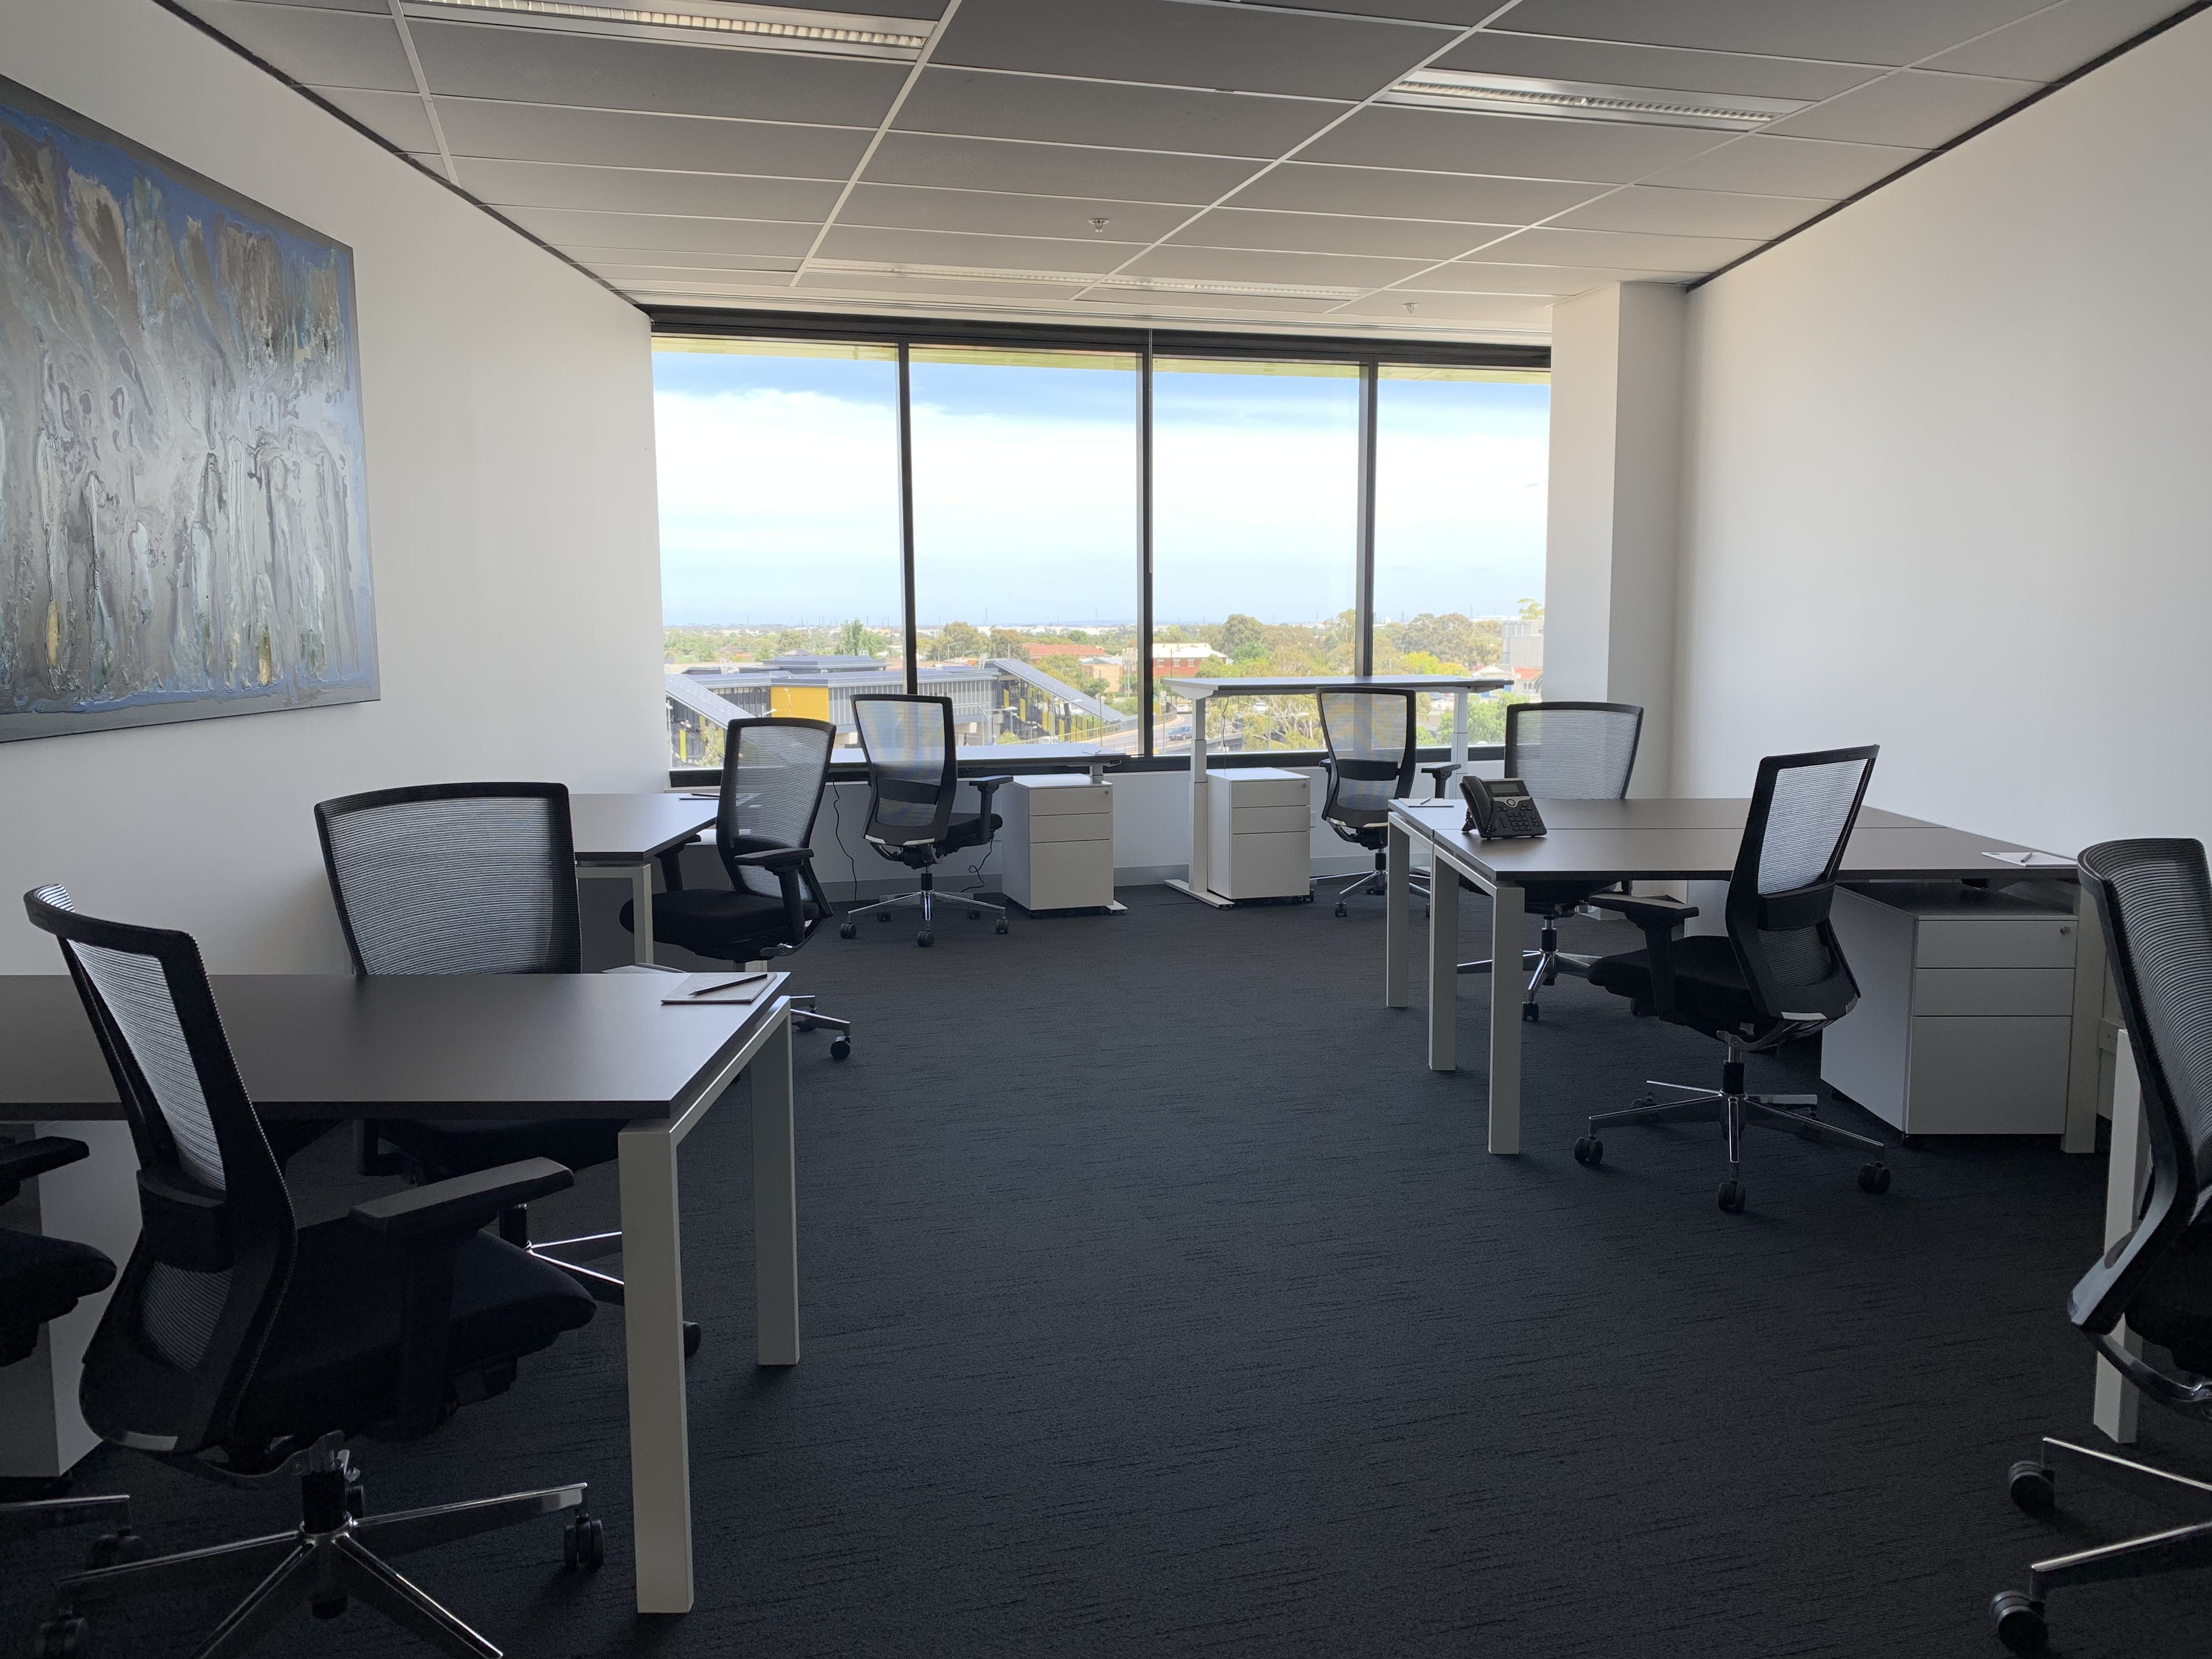 Office 3, serviced office at Victory Offices | Sunshine, image 1